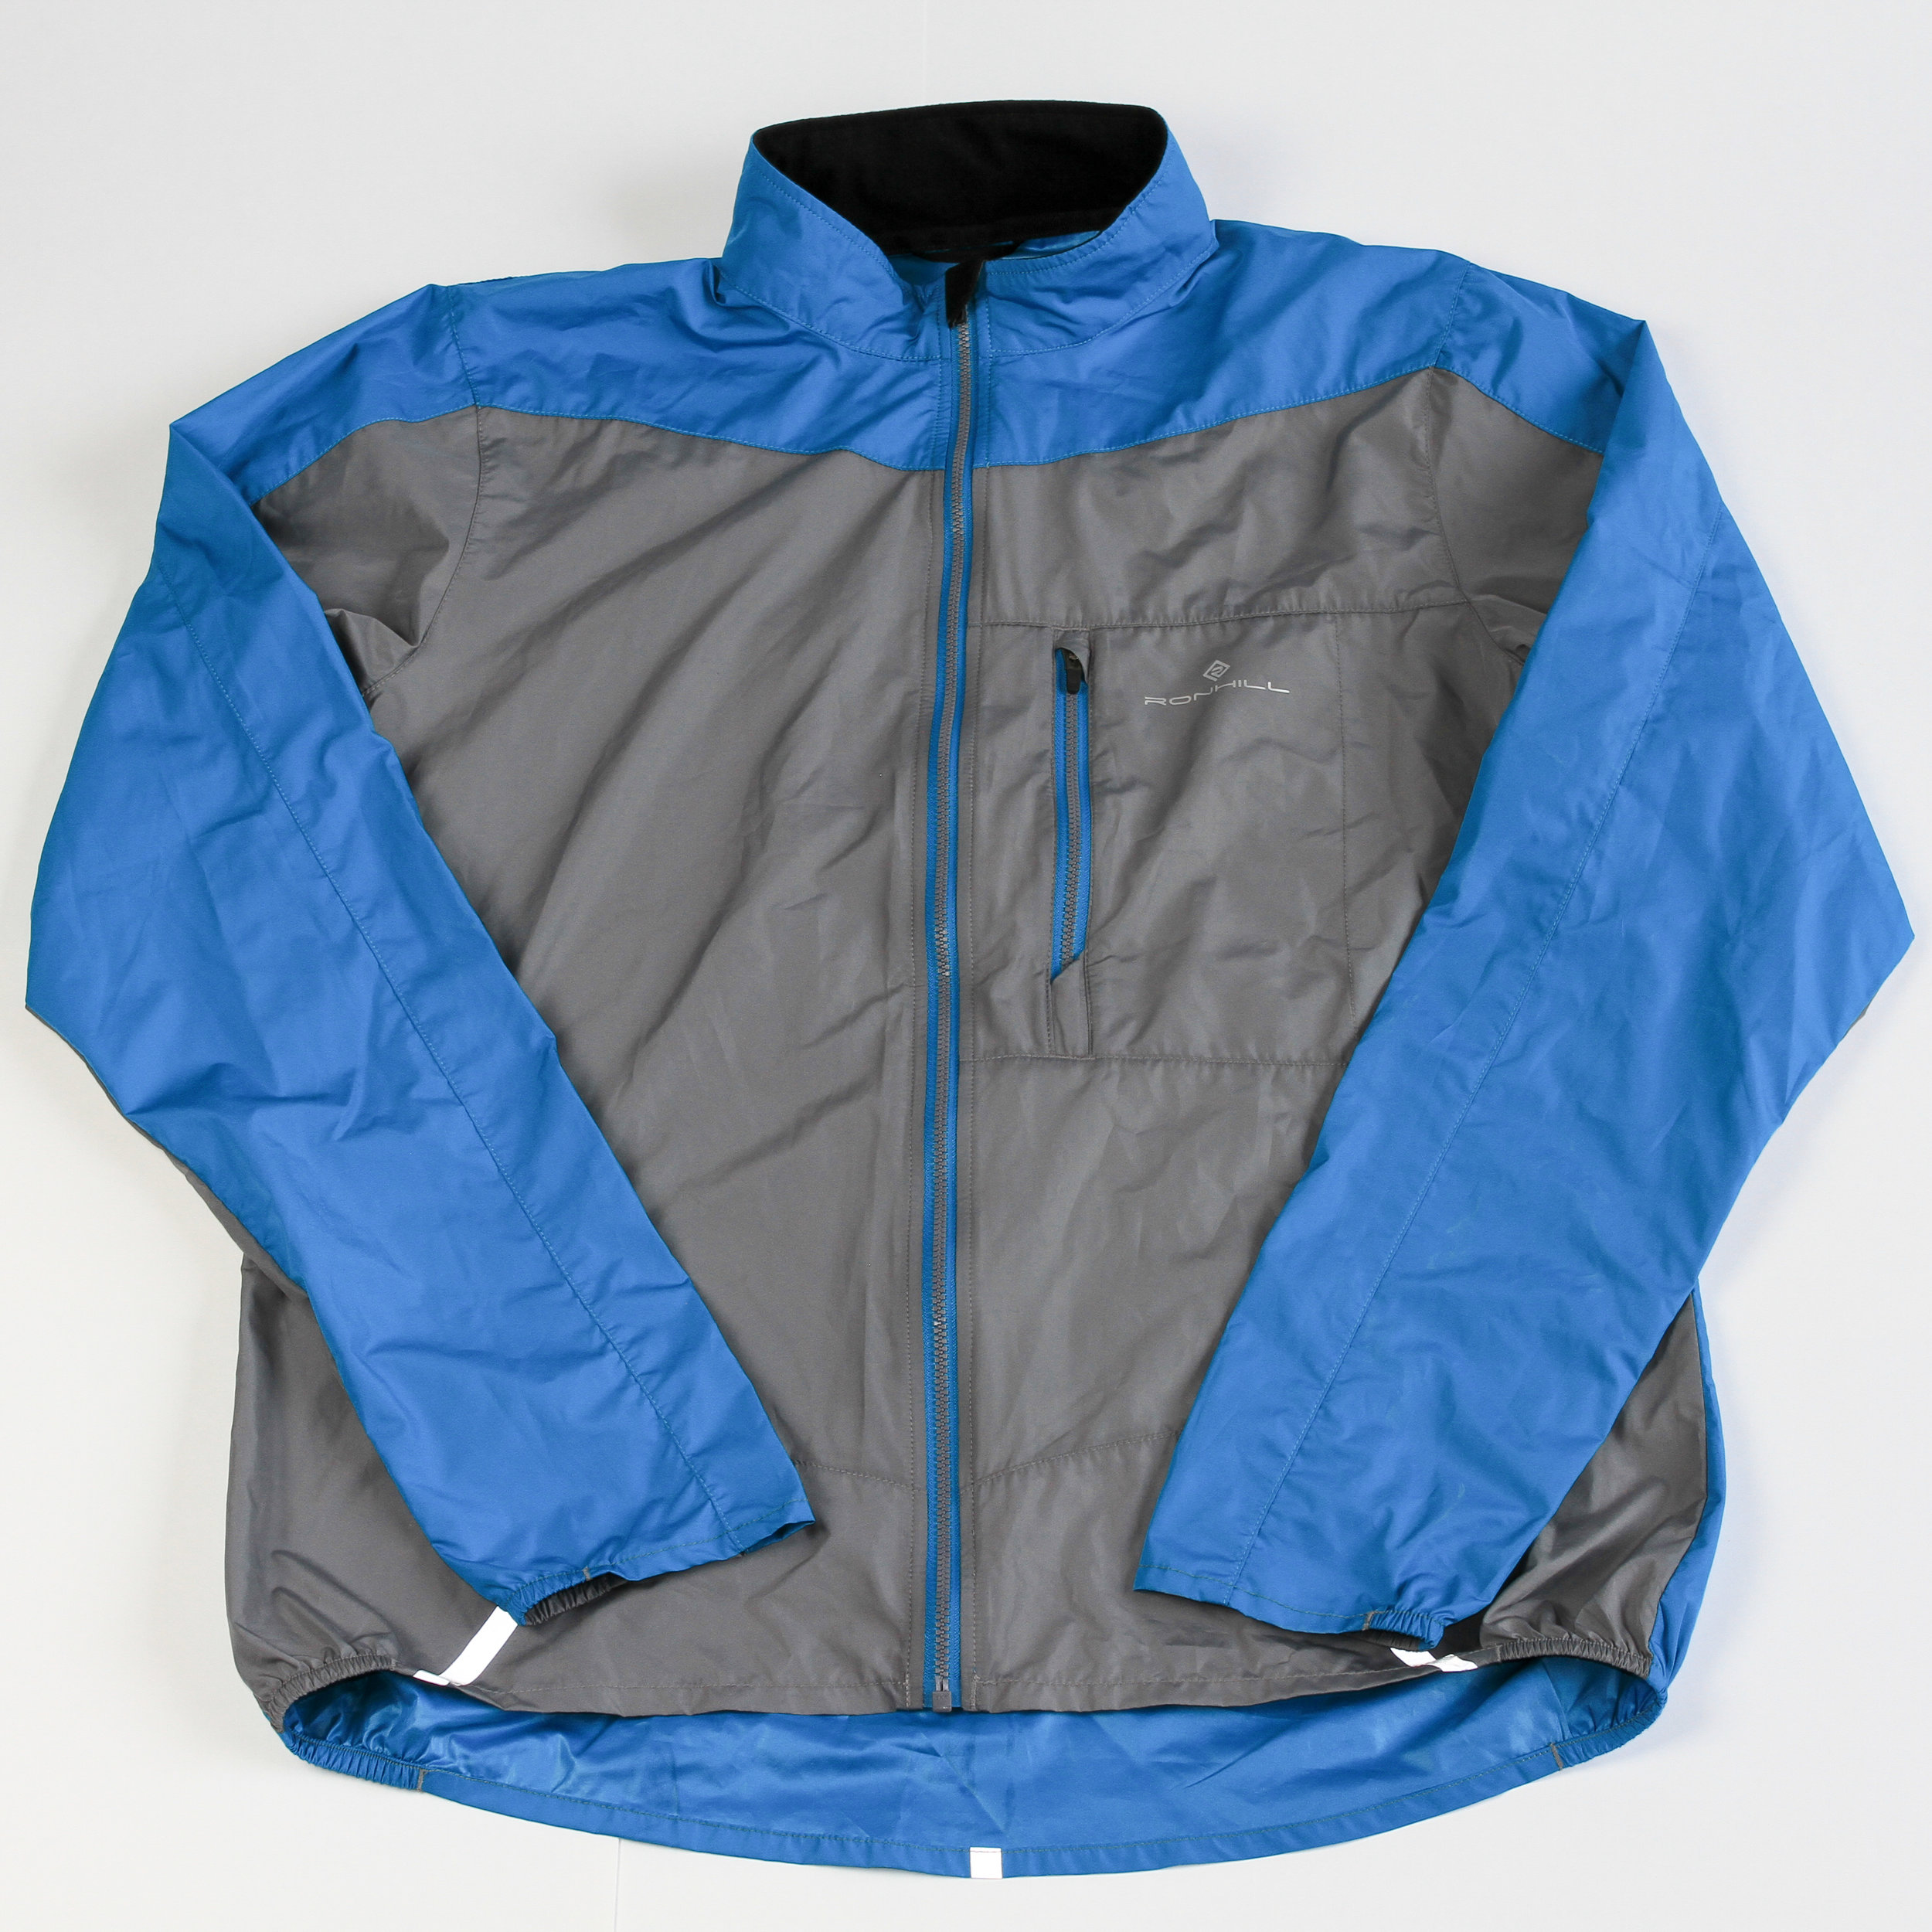 Ronhill newest jacket.JPG